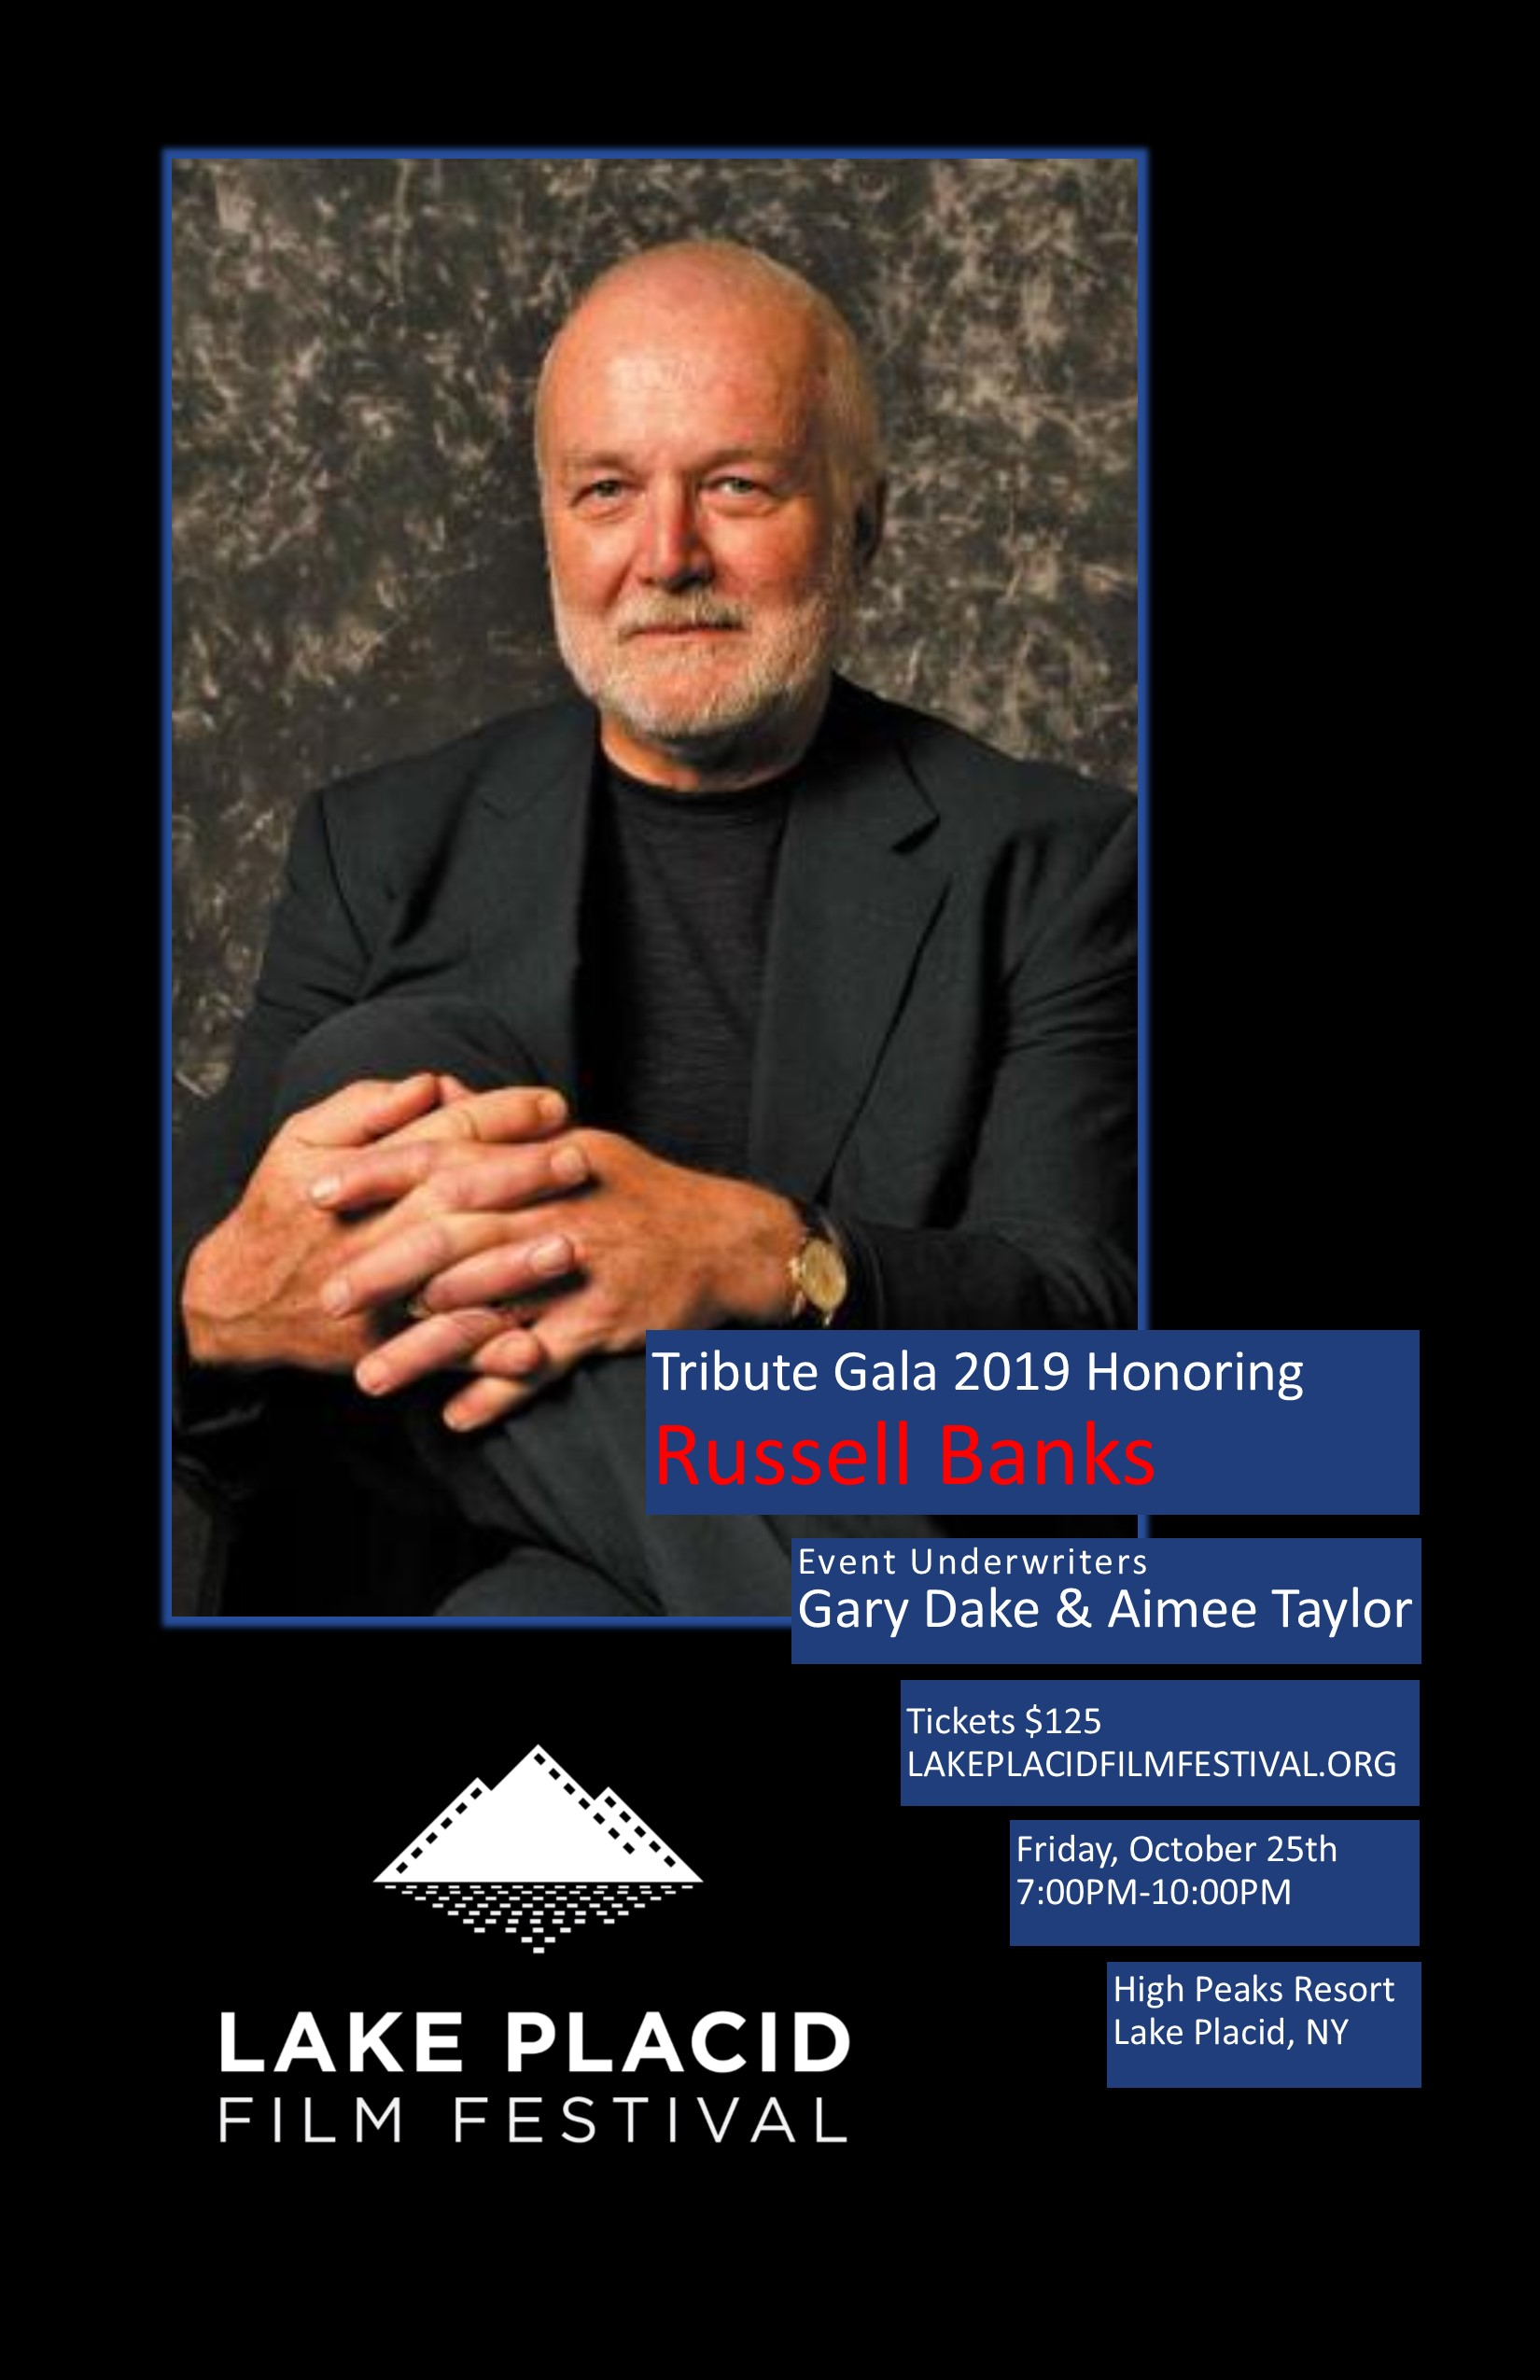 Tribute Gala 2019 Russell Banks Poster 11x17.jpg